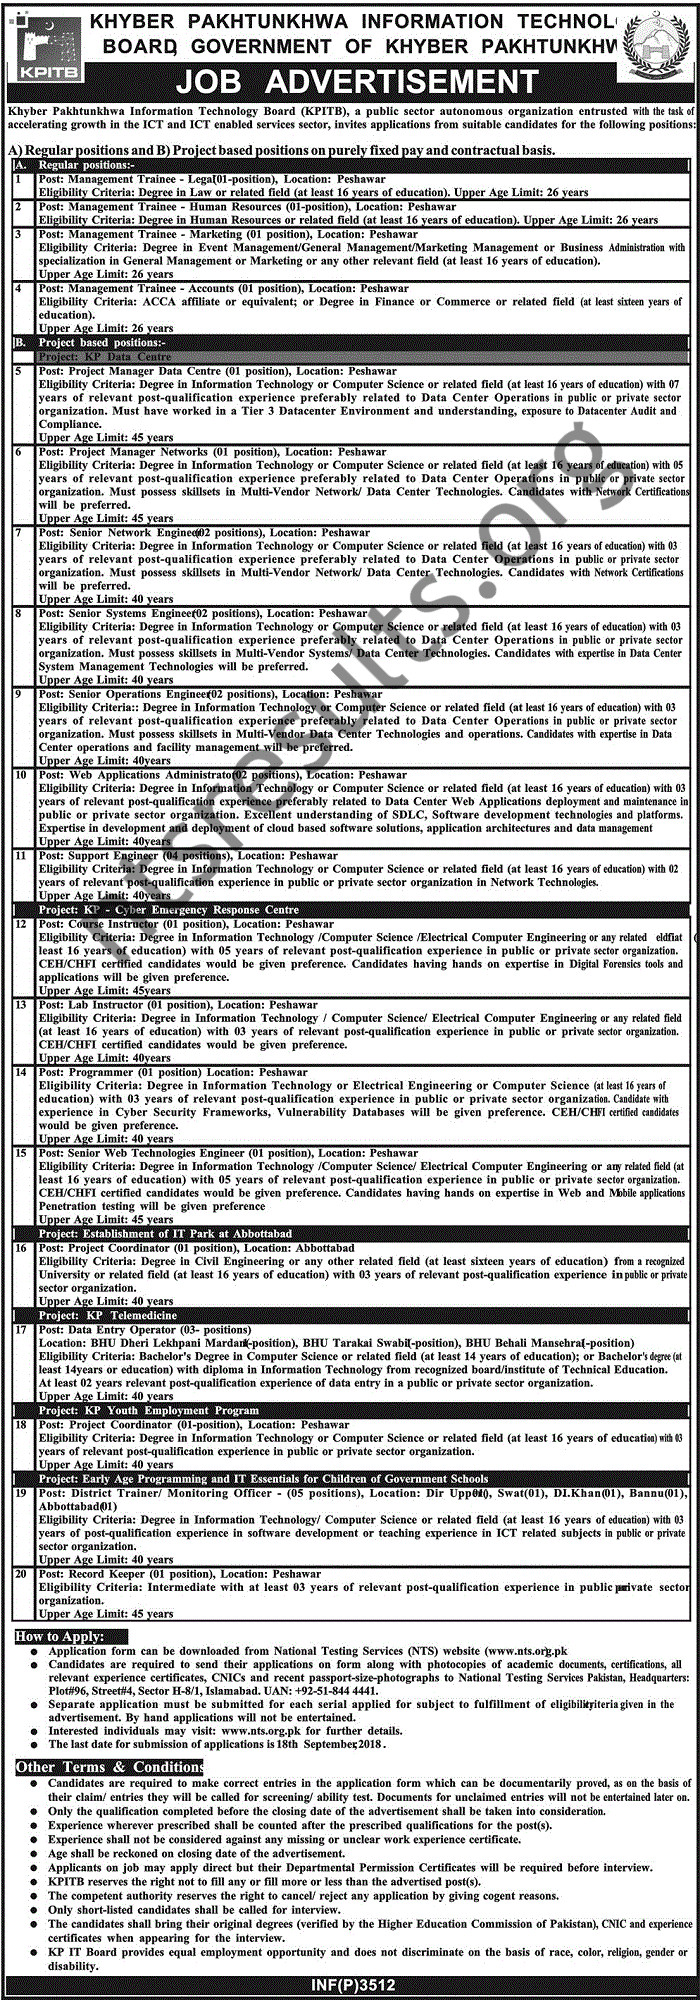 Khyber Pakhtunkhwa Information Technology Board Jobs Via NTS